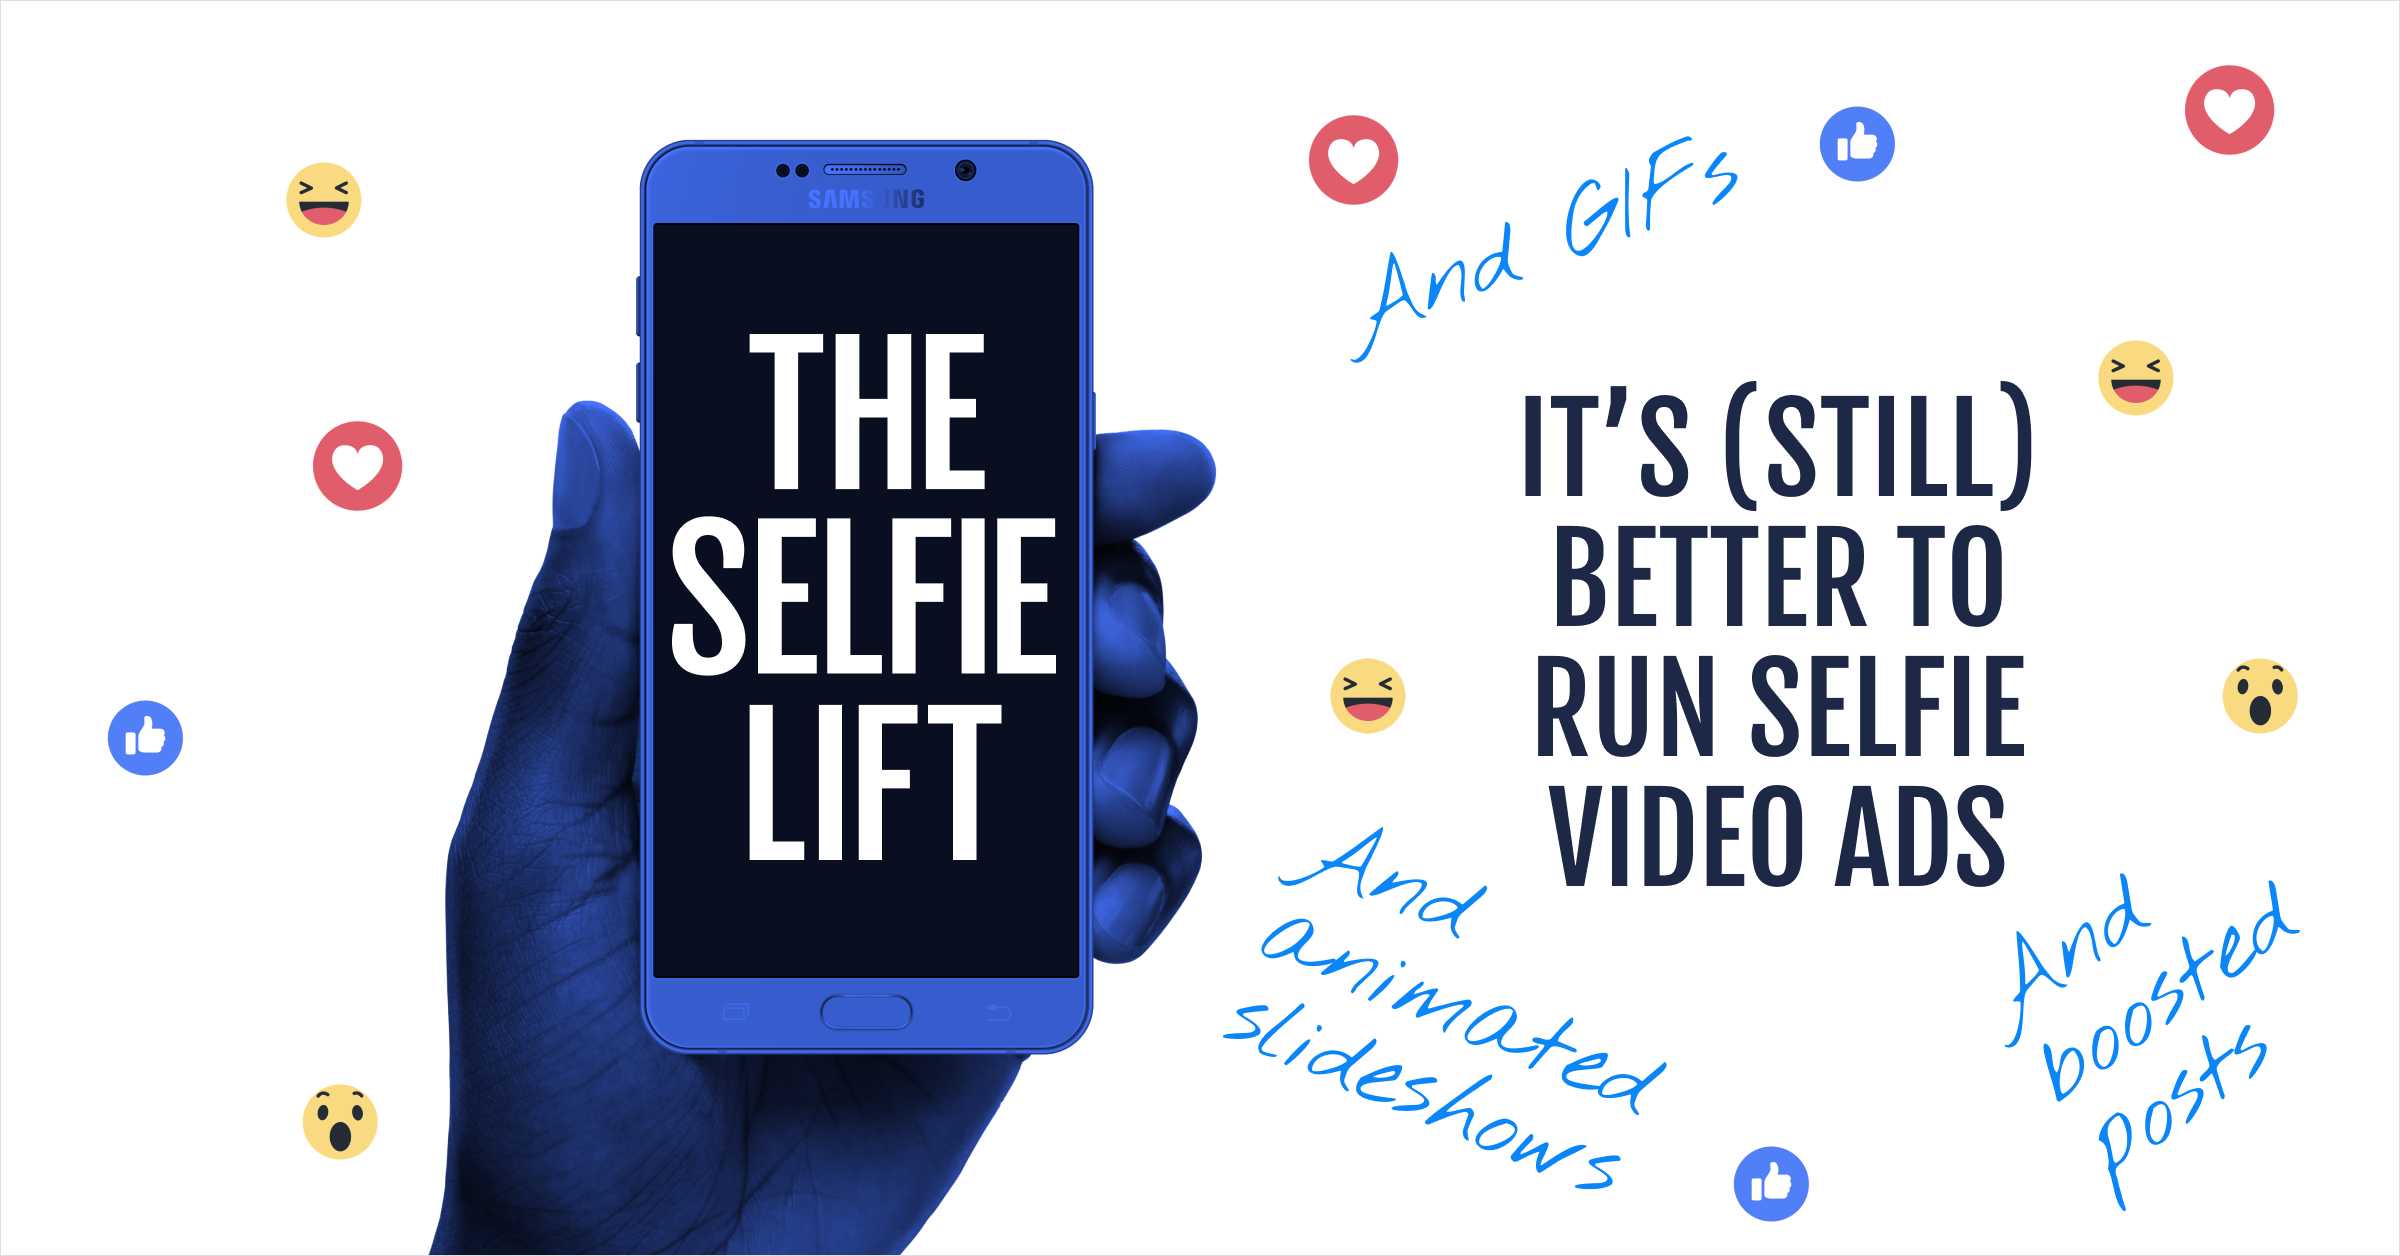 Selfie videos are still the most impactful ads